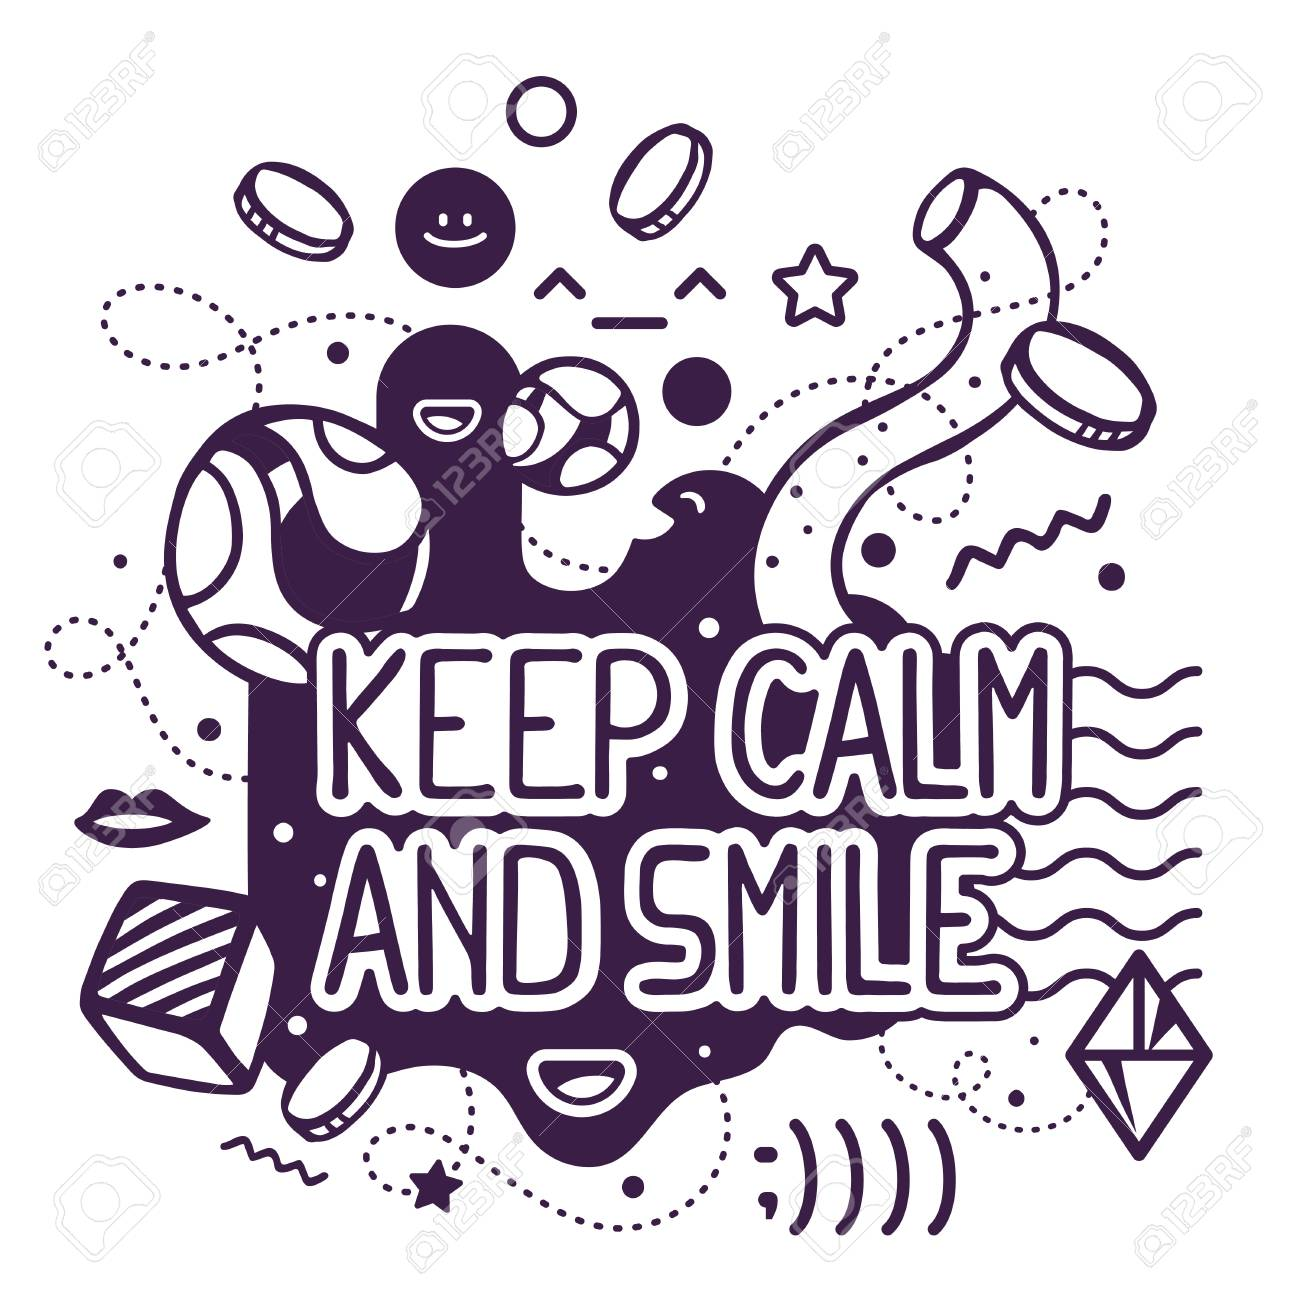 Vector Illustration Of Black And White Keep Calm And Smile Quote